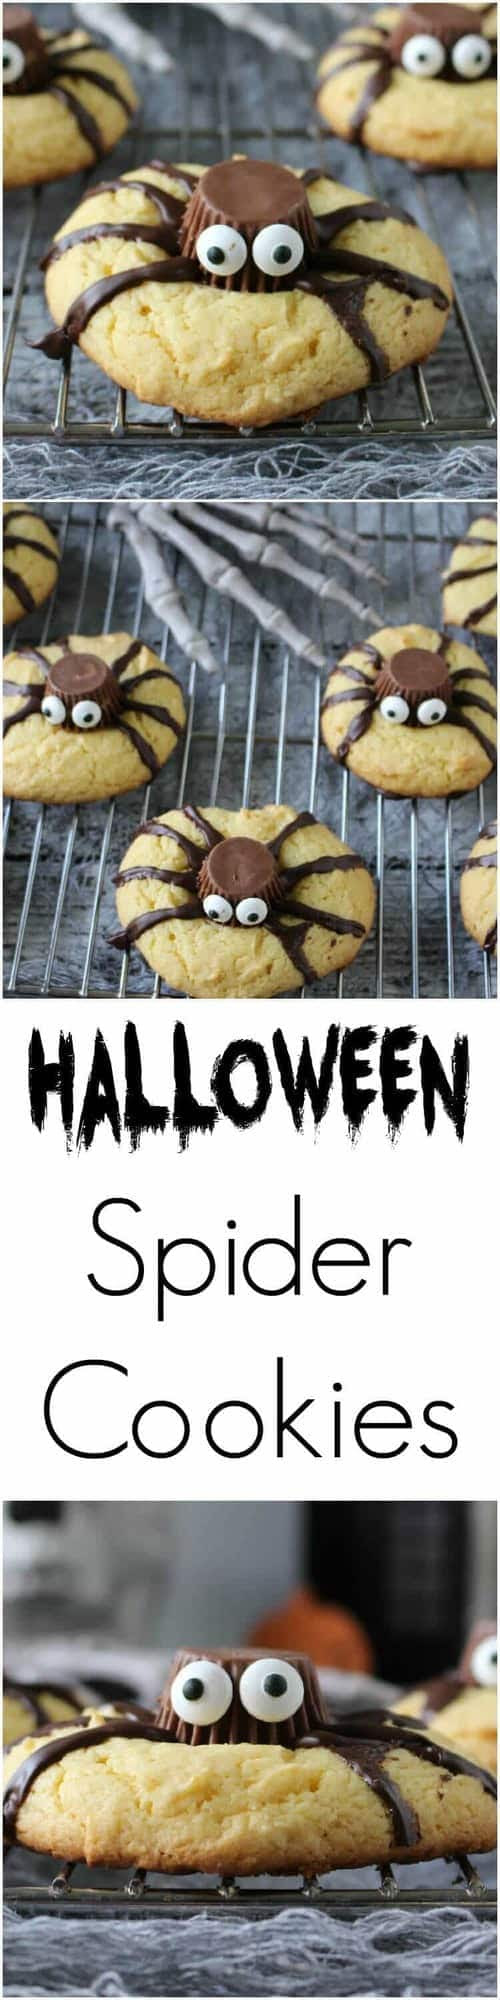 Easy Halloween Spider Cookies - Page 2 of 2 - Princess ...